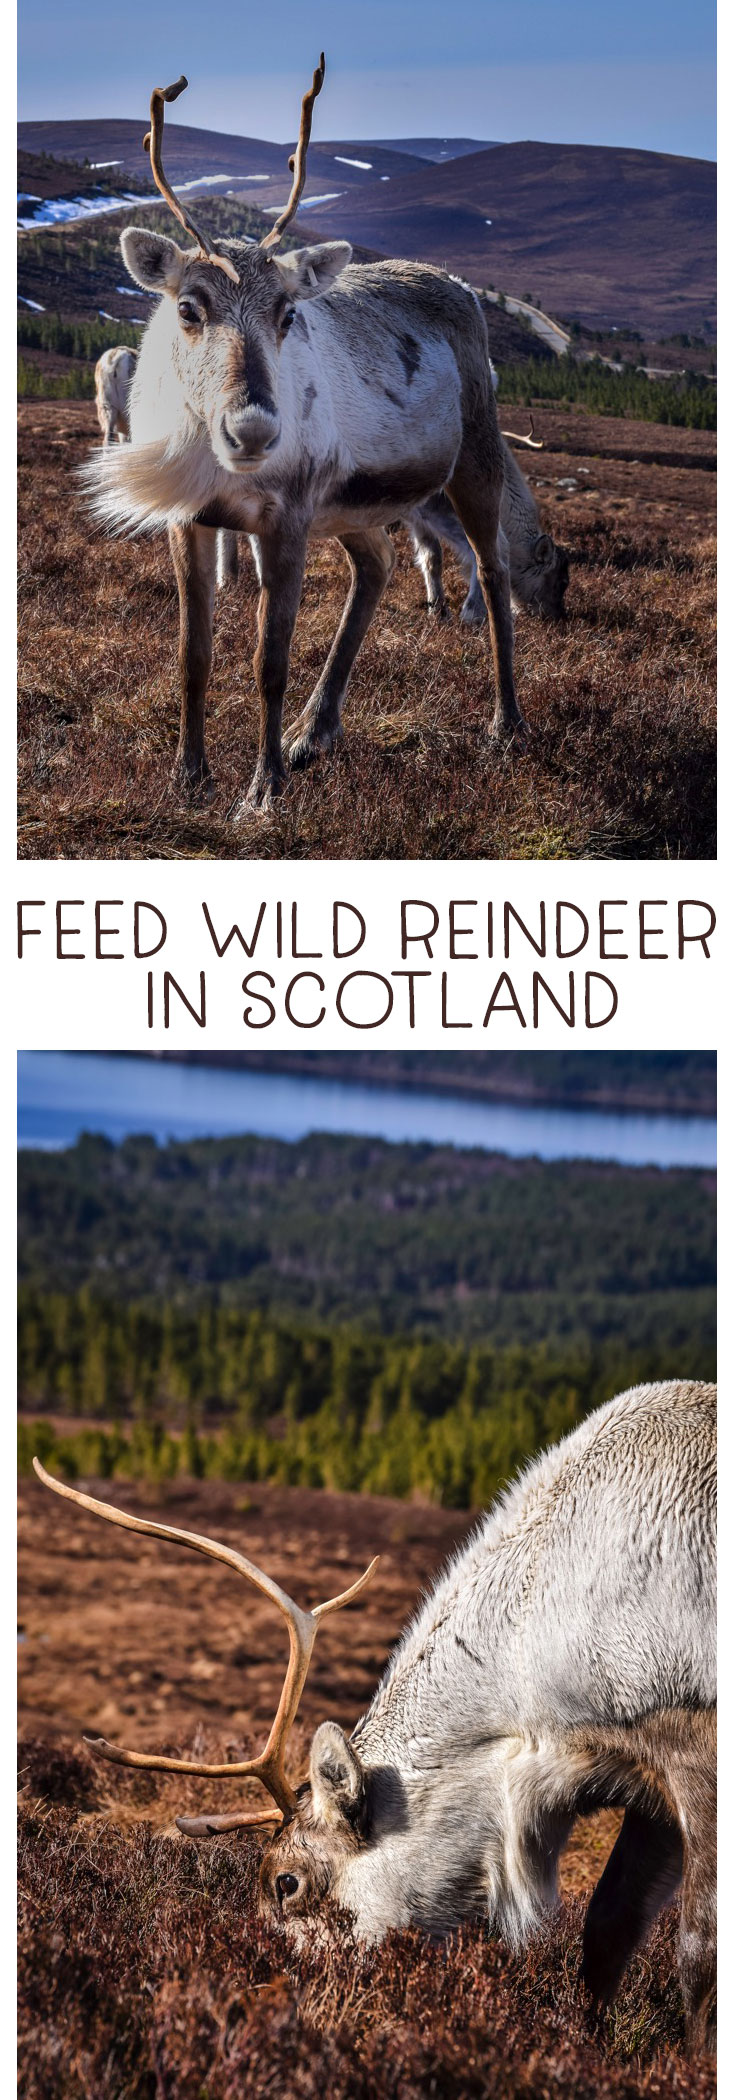 Feed reindeer in Scotland! Learn all about this amazing adventure at the Cairngorm Reindeer Centre in the Cairngorms National Park outside Aviemore. An amazing wildlife encounter that is family friendly! Add to your family adventures and bucket lists!! #Scotland #ThingstodoinScotland #Reindeer #WildEncounters #Cairngorms via @mrsmajorhoff